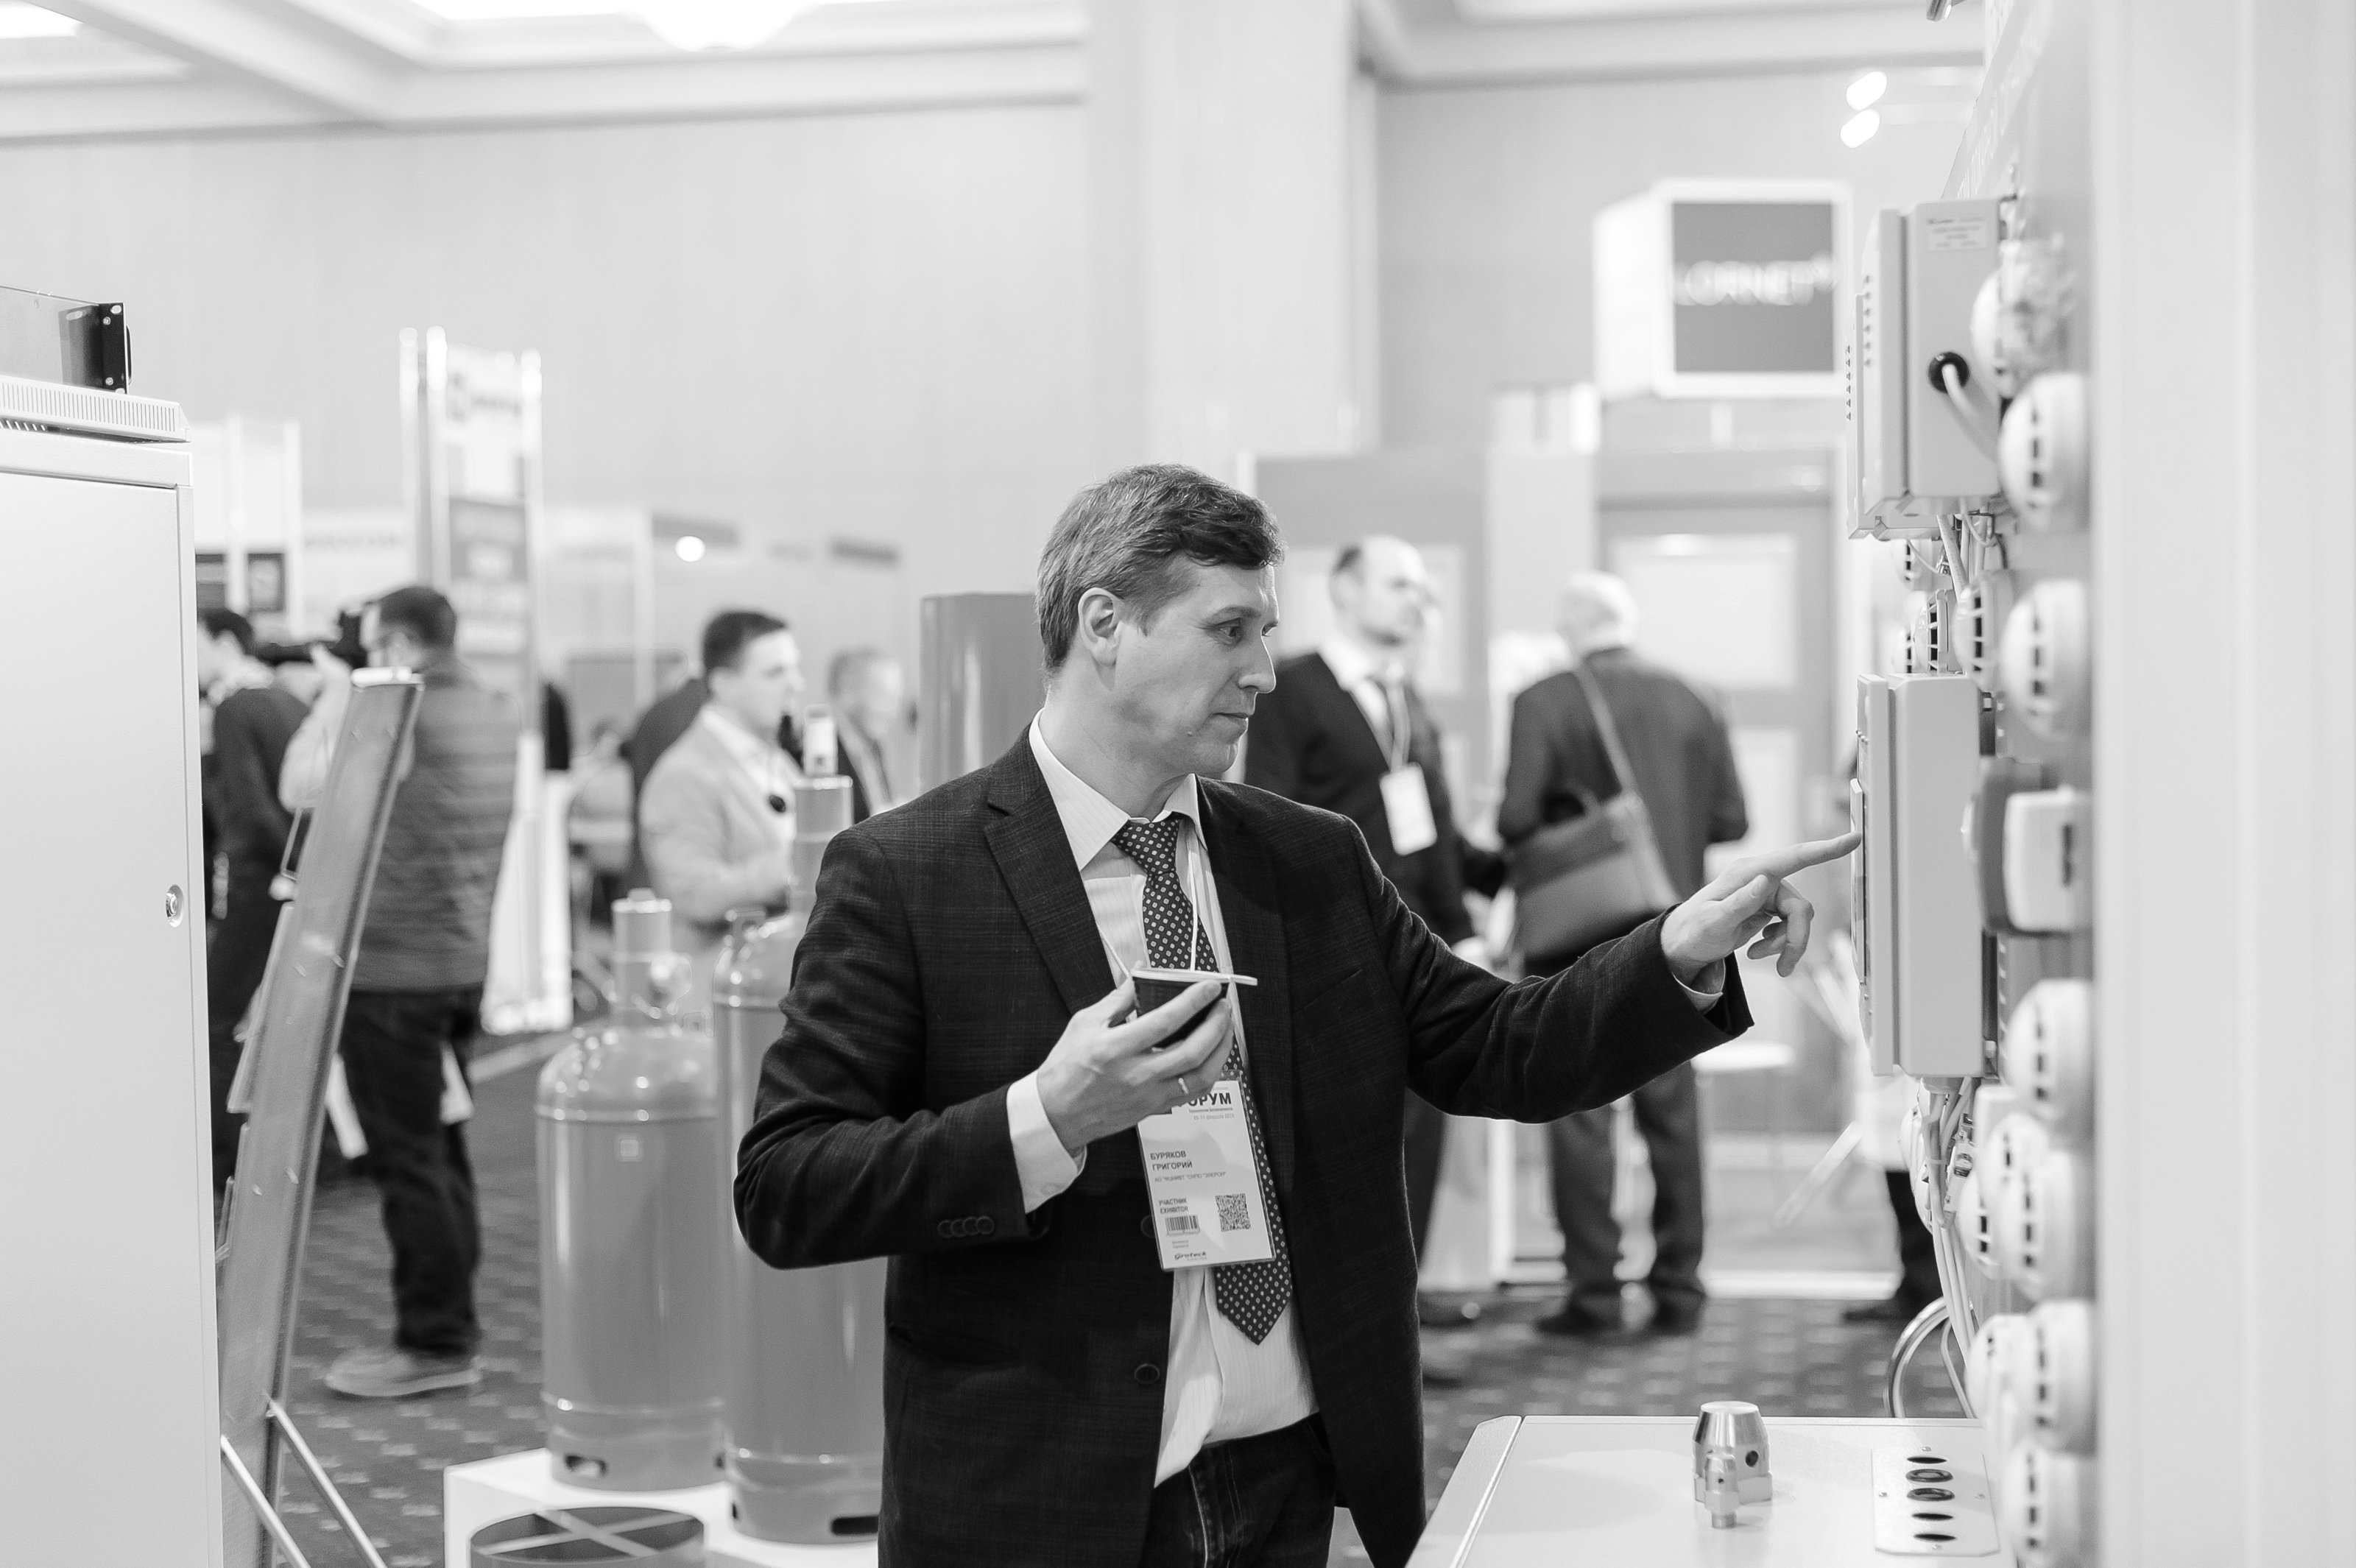 Oil & Gas and Industry: Meeting with integrators and security directors at TB Forum 2017